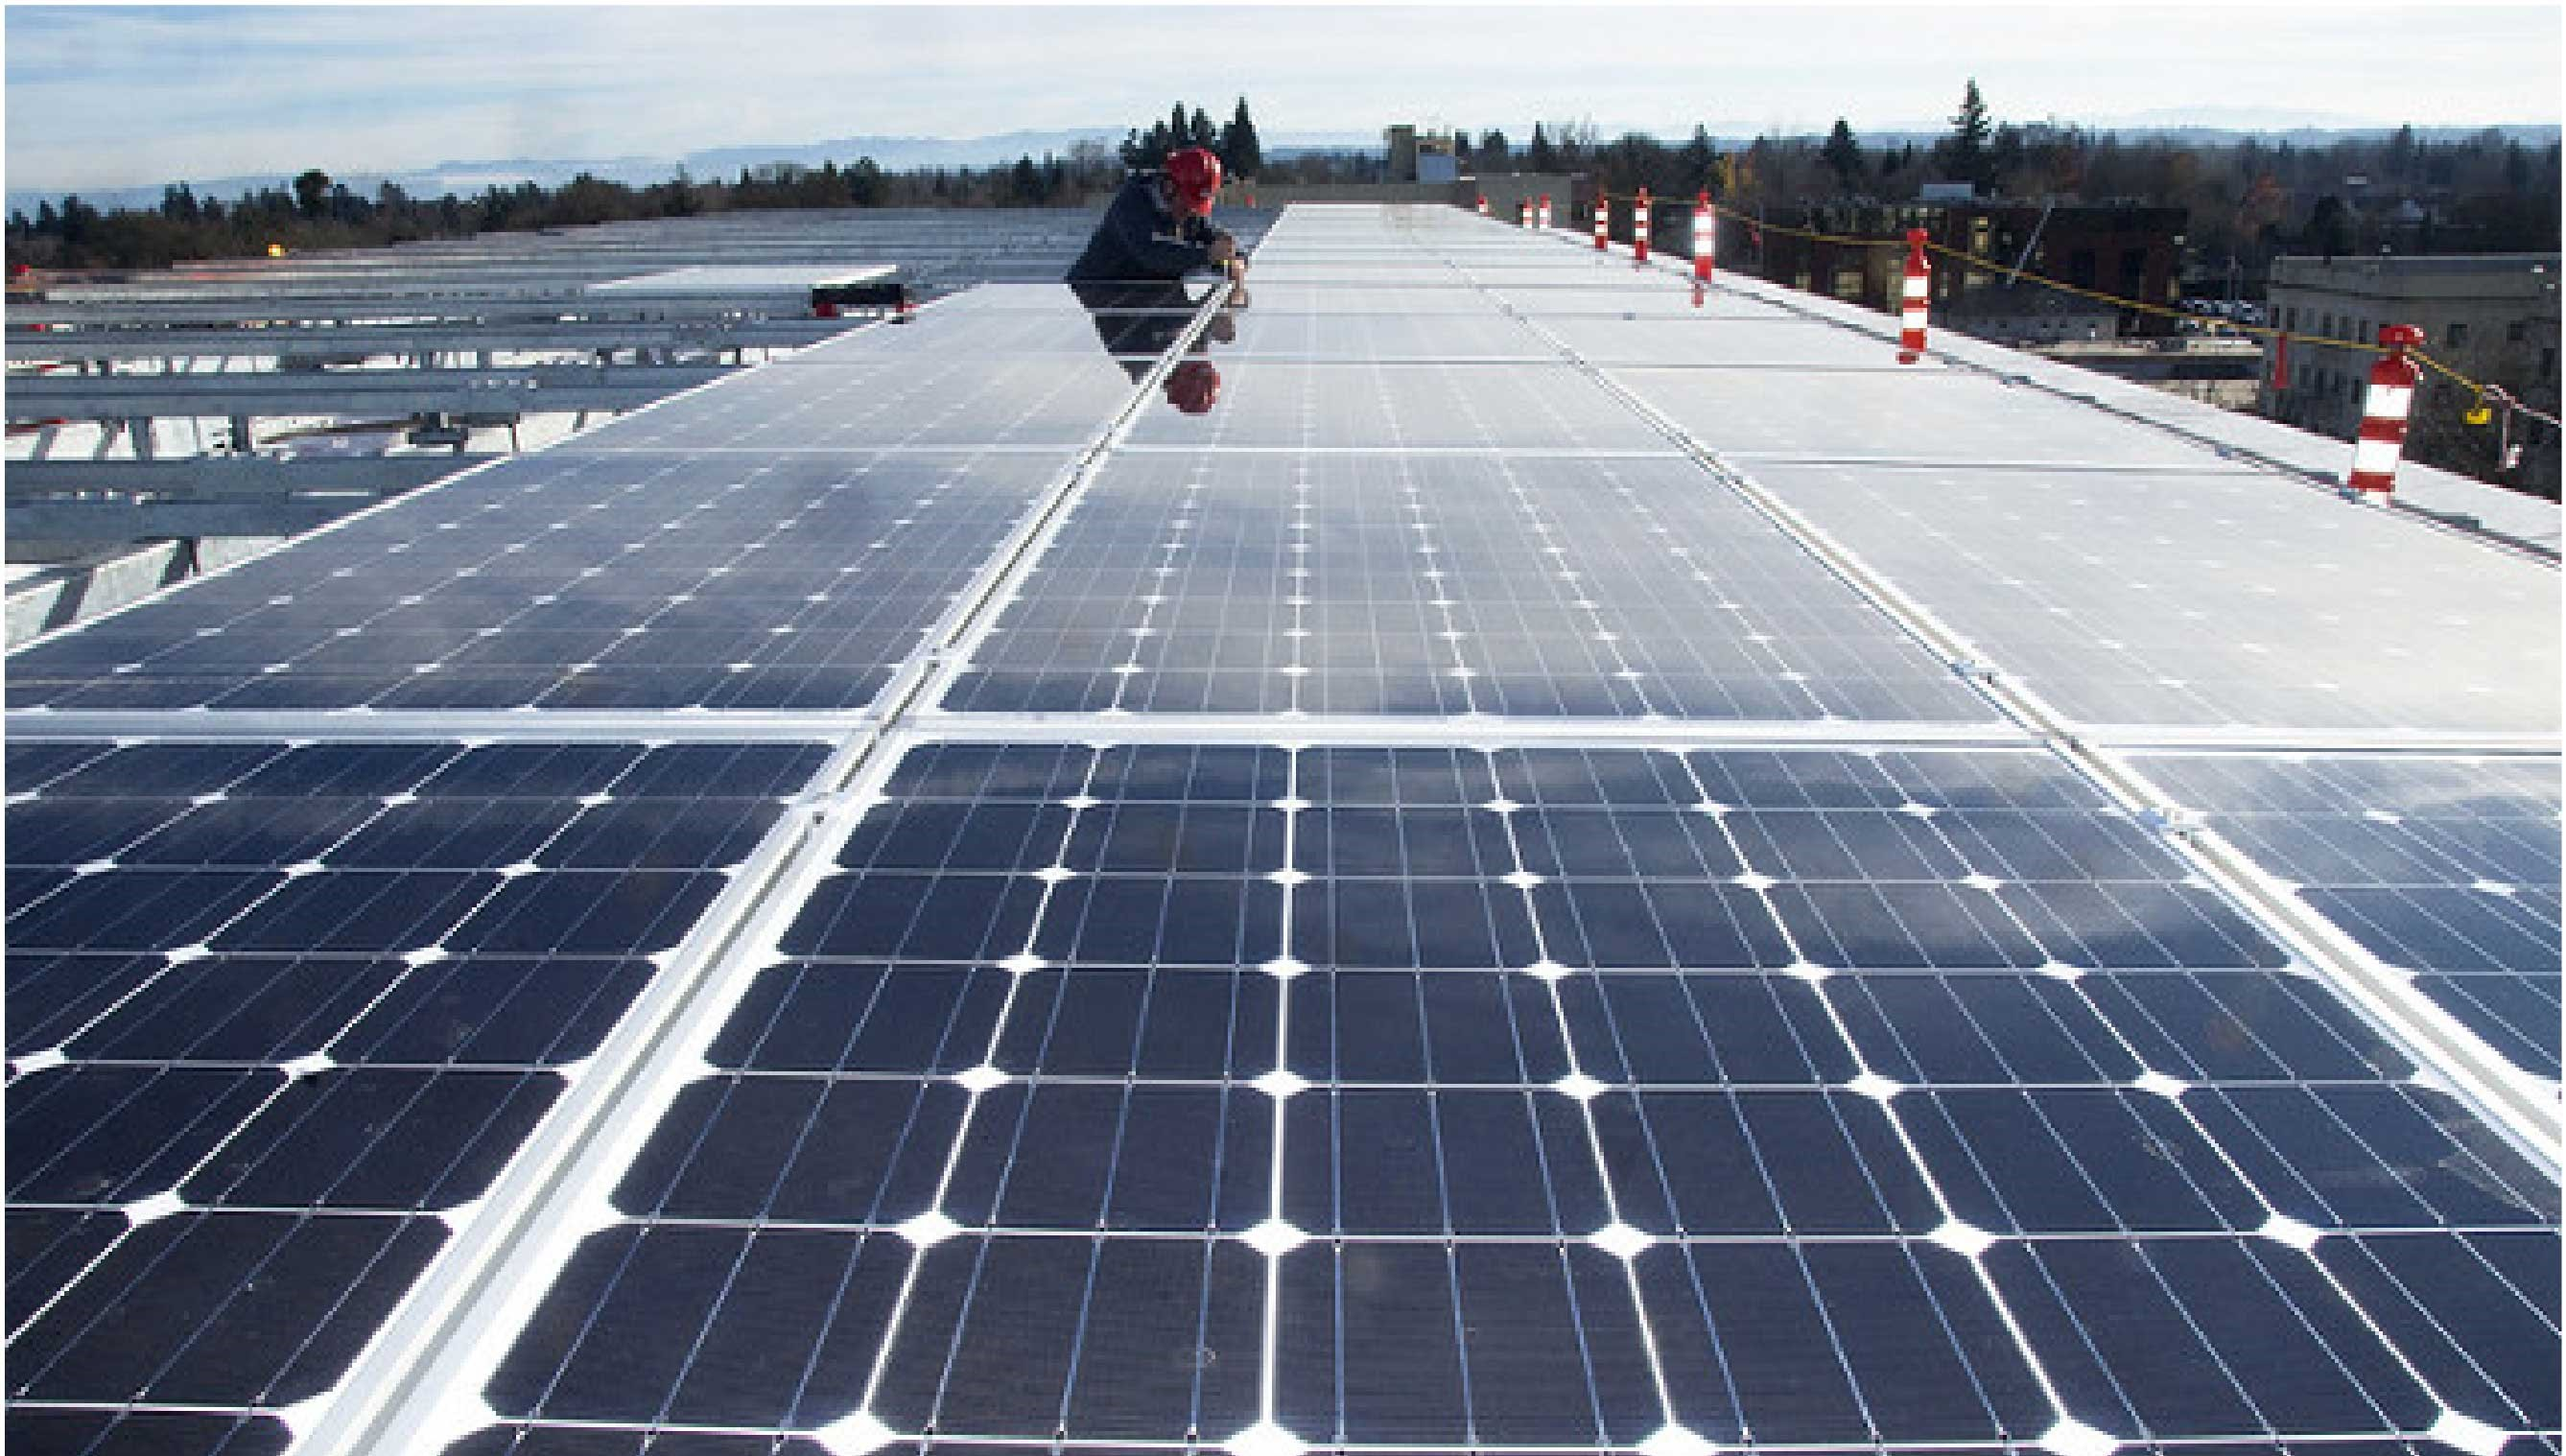 <h3>STREAMLINE SOLAR DEVELOPMENT</h3><p><h5>Cities and towns can streamline solar development by eliminating red tape and adopting requirements for new construction.</h5><em>Oregon Department of Transportation via Flickr CC BY 2.0</em>